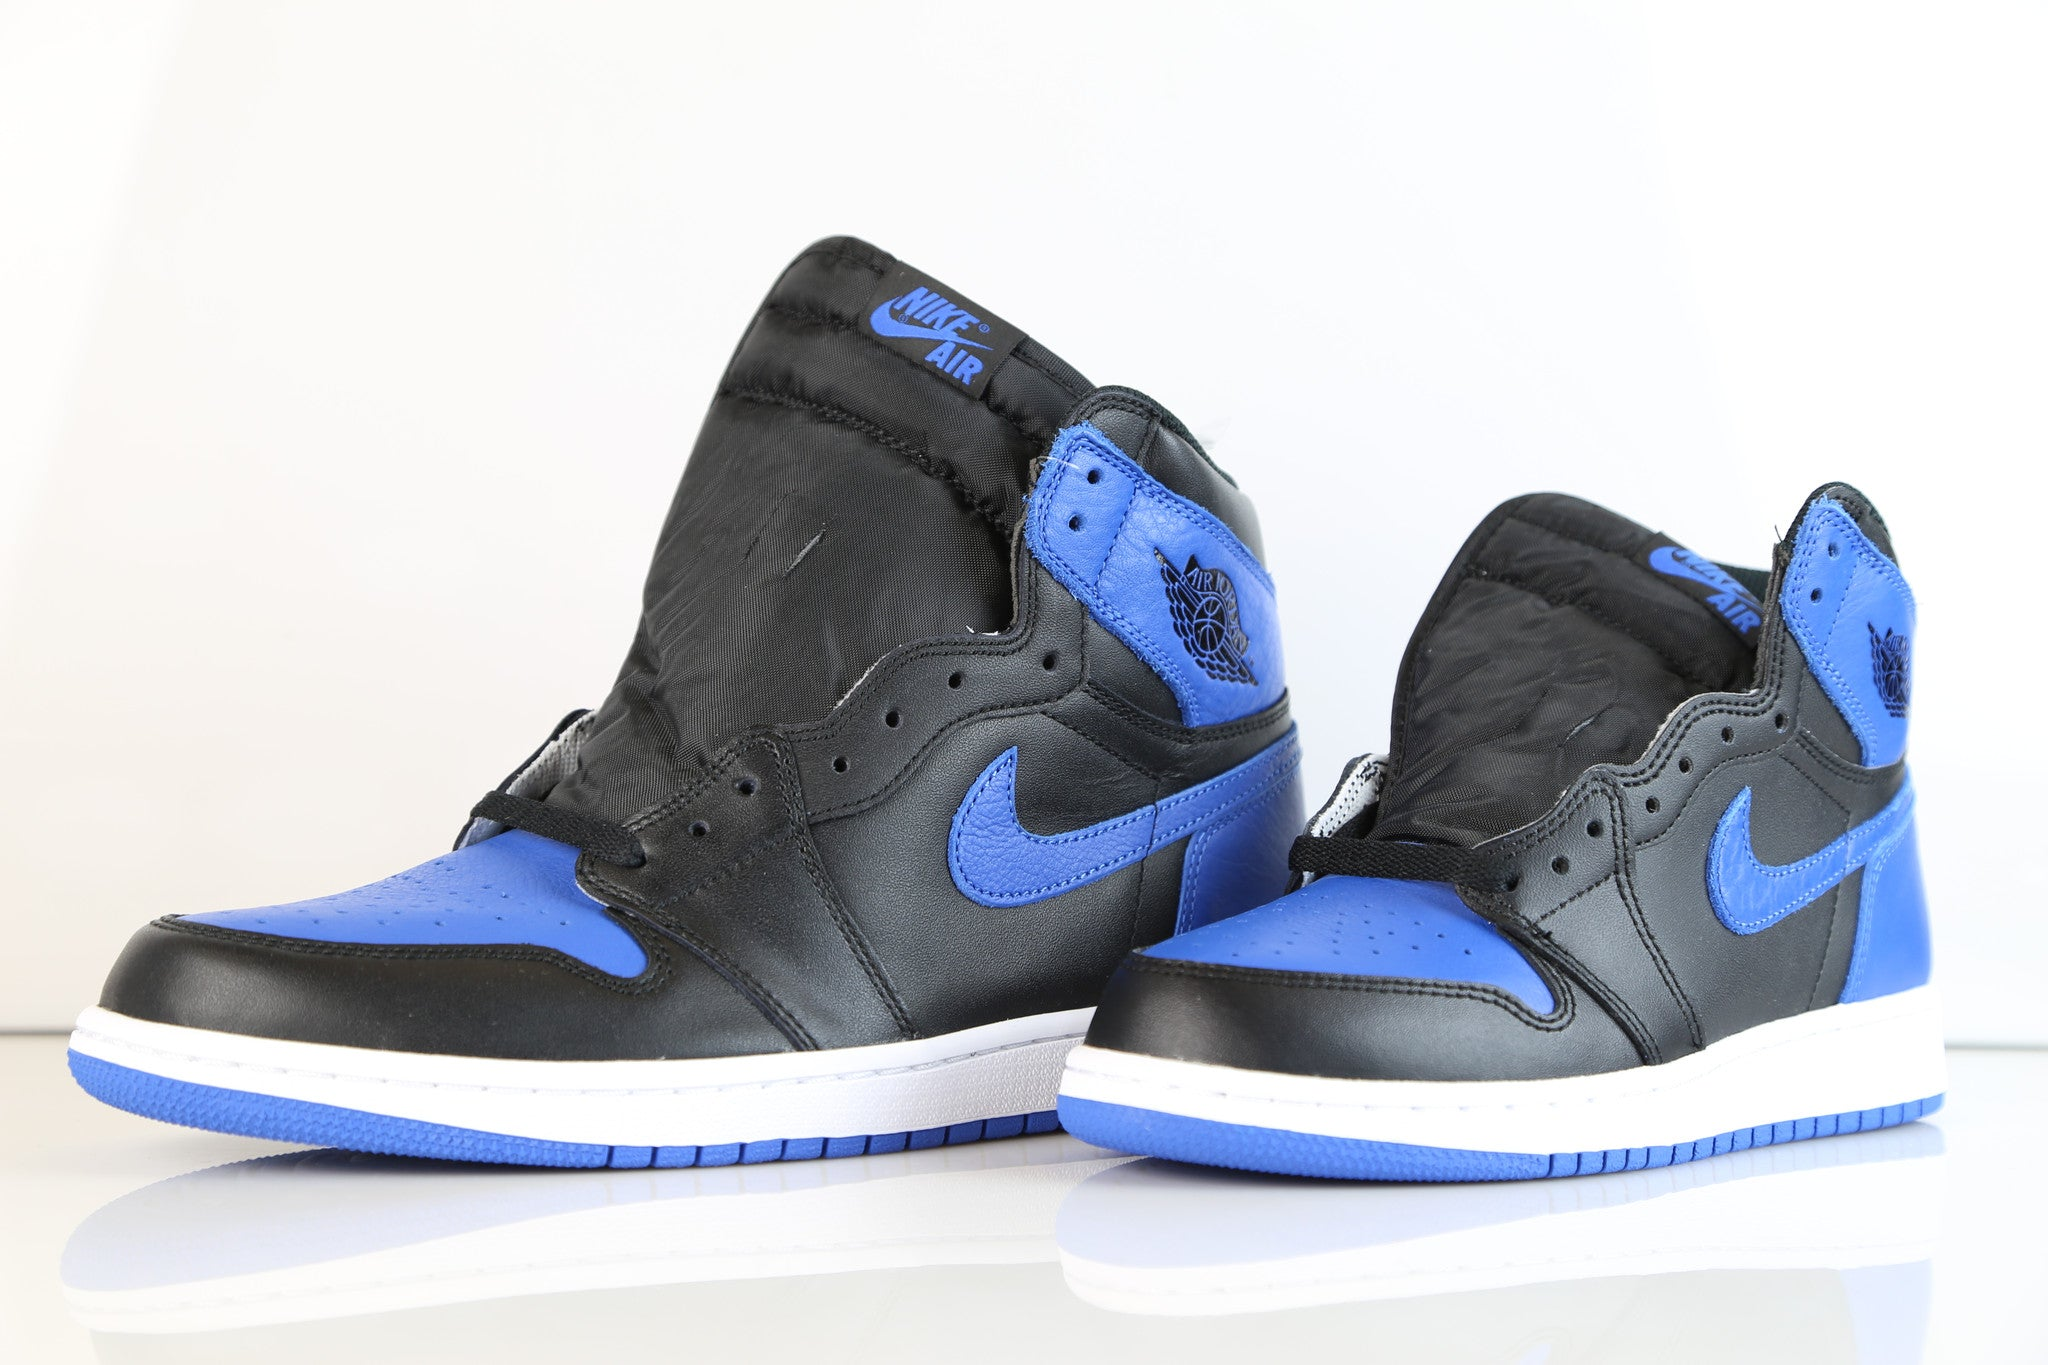 detailed look fc3fc 2f943 Nike Air Jordan Retro 1 High OG Black Royal Blue 2017 555088-007 Adult    Zadehkicks